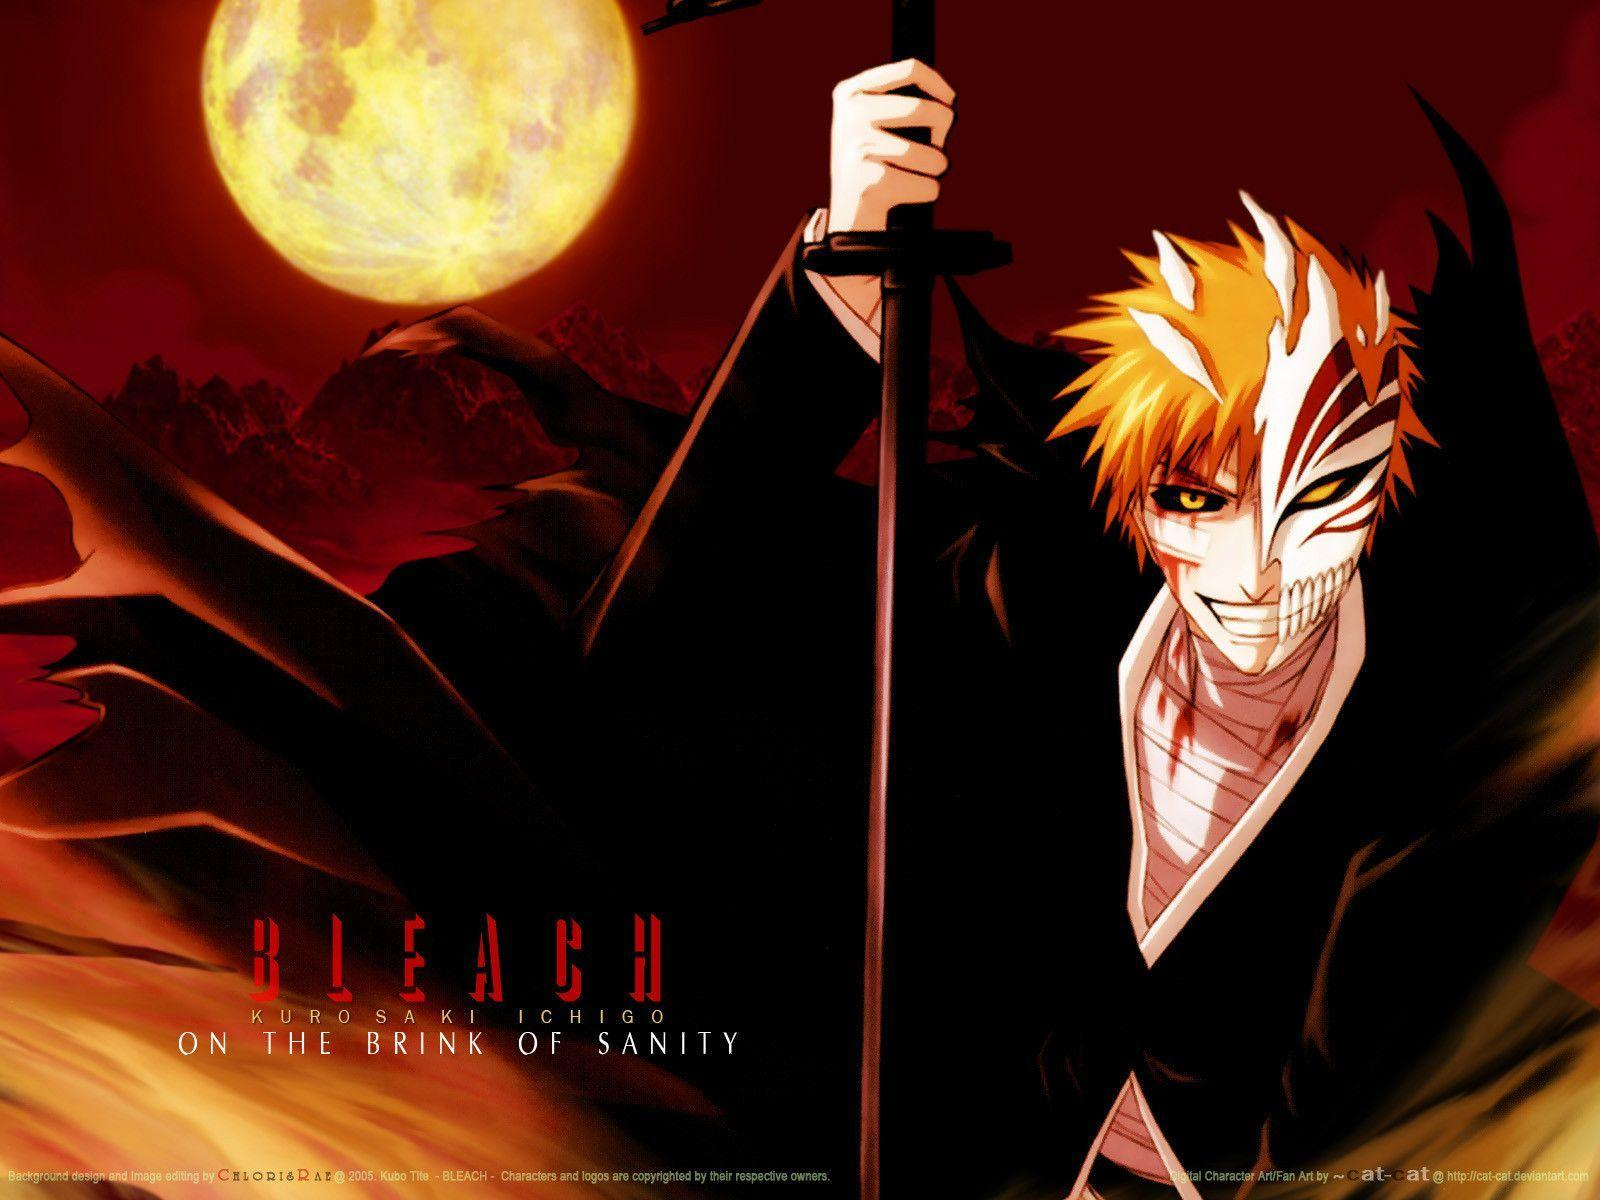 http://wallpapercave.com/wp/B1Cbsj5.jpg Ichigo Hollow Wallpaper